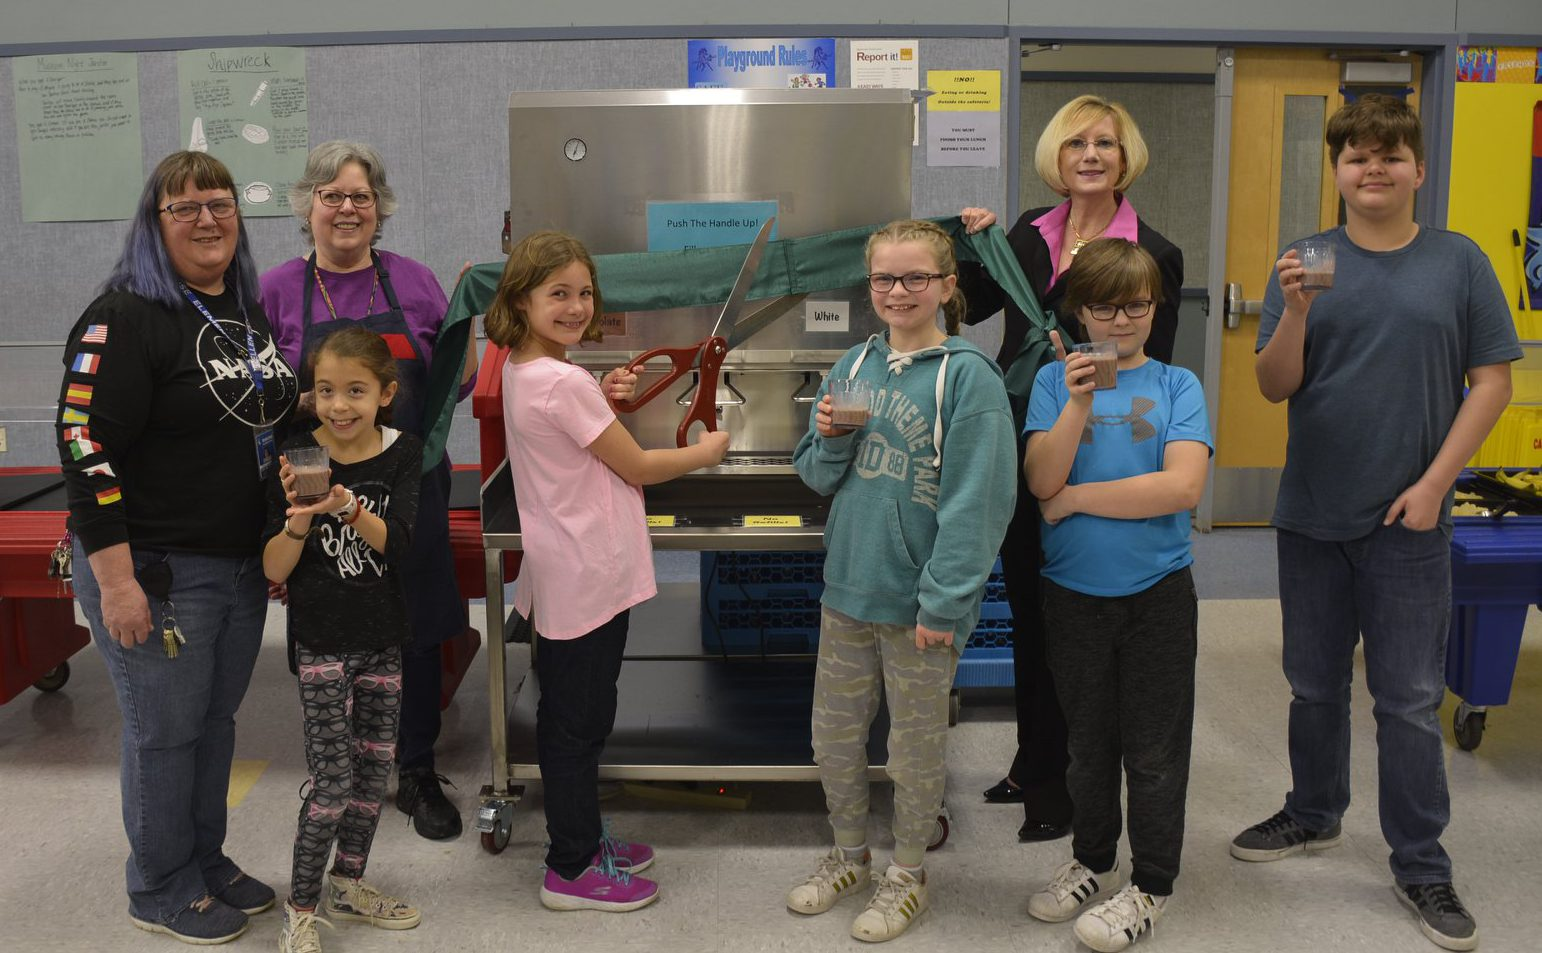 Members of the Gause Green Team, food service team, and students welcome the new milk dispenser to the school cafeteria, posing with cups of regular or chocolate milk.